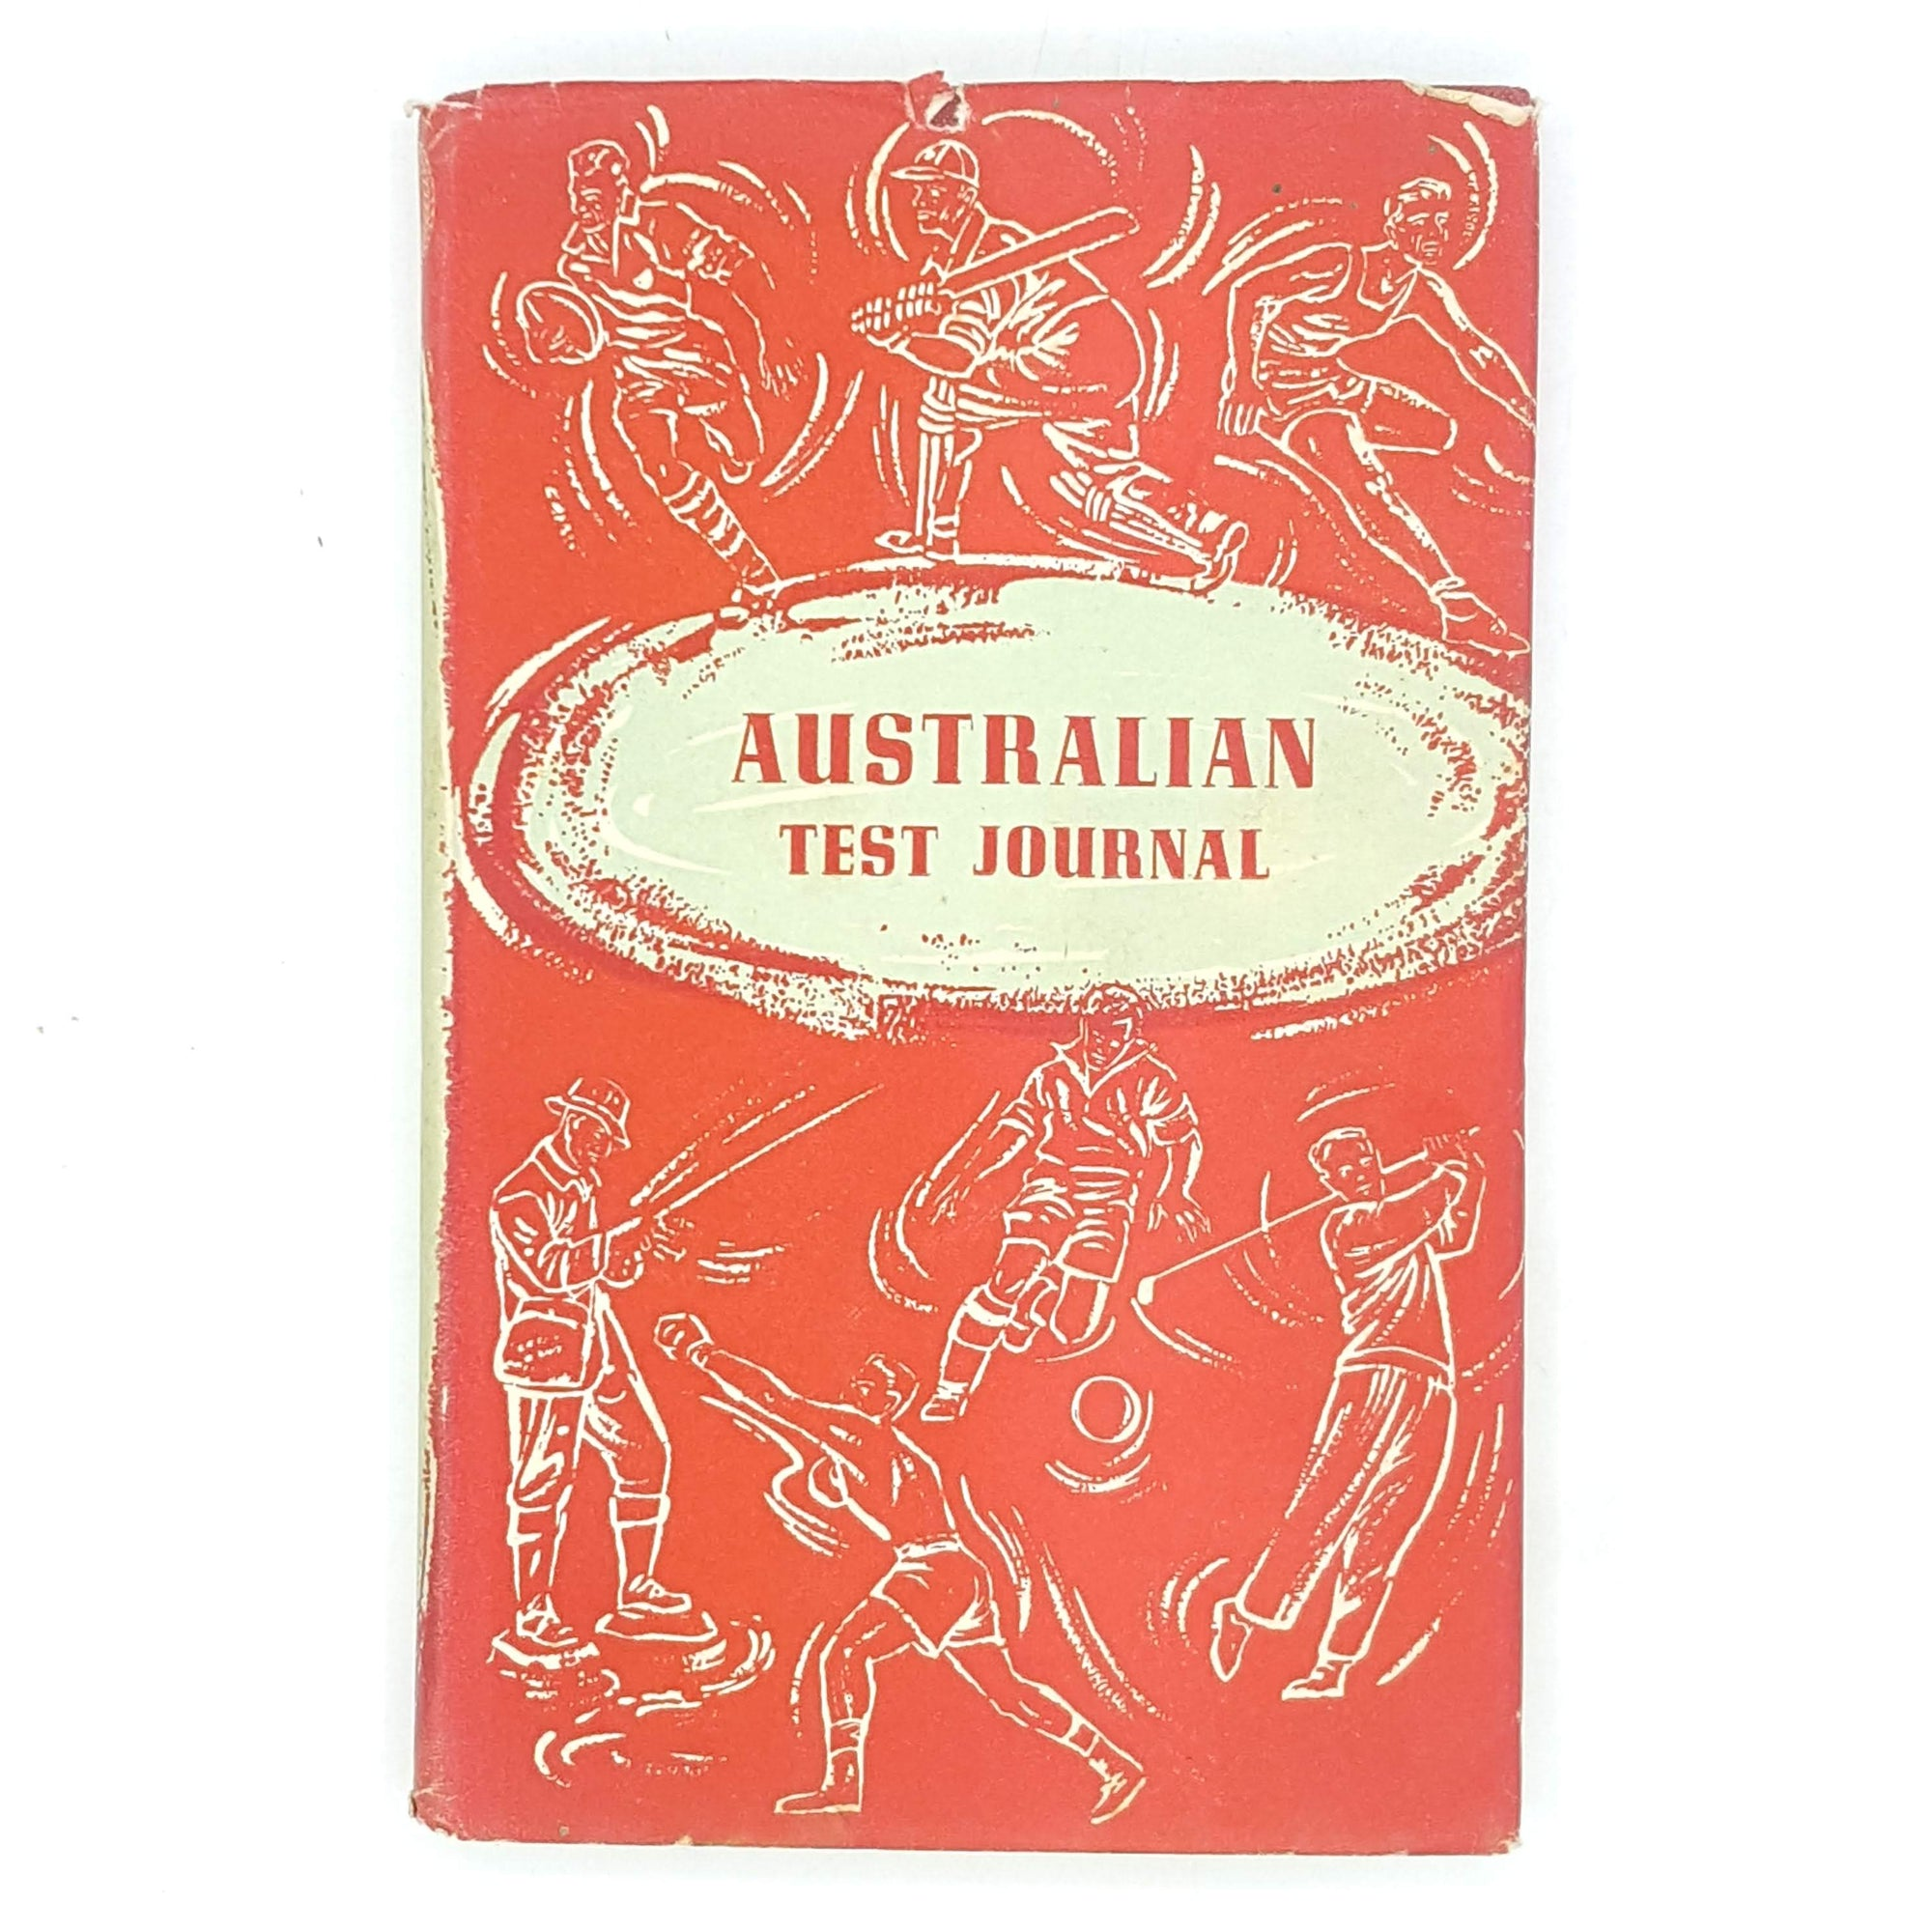 Australian Test Journal by John Arlott 1956